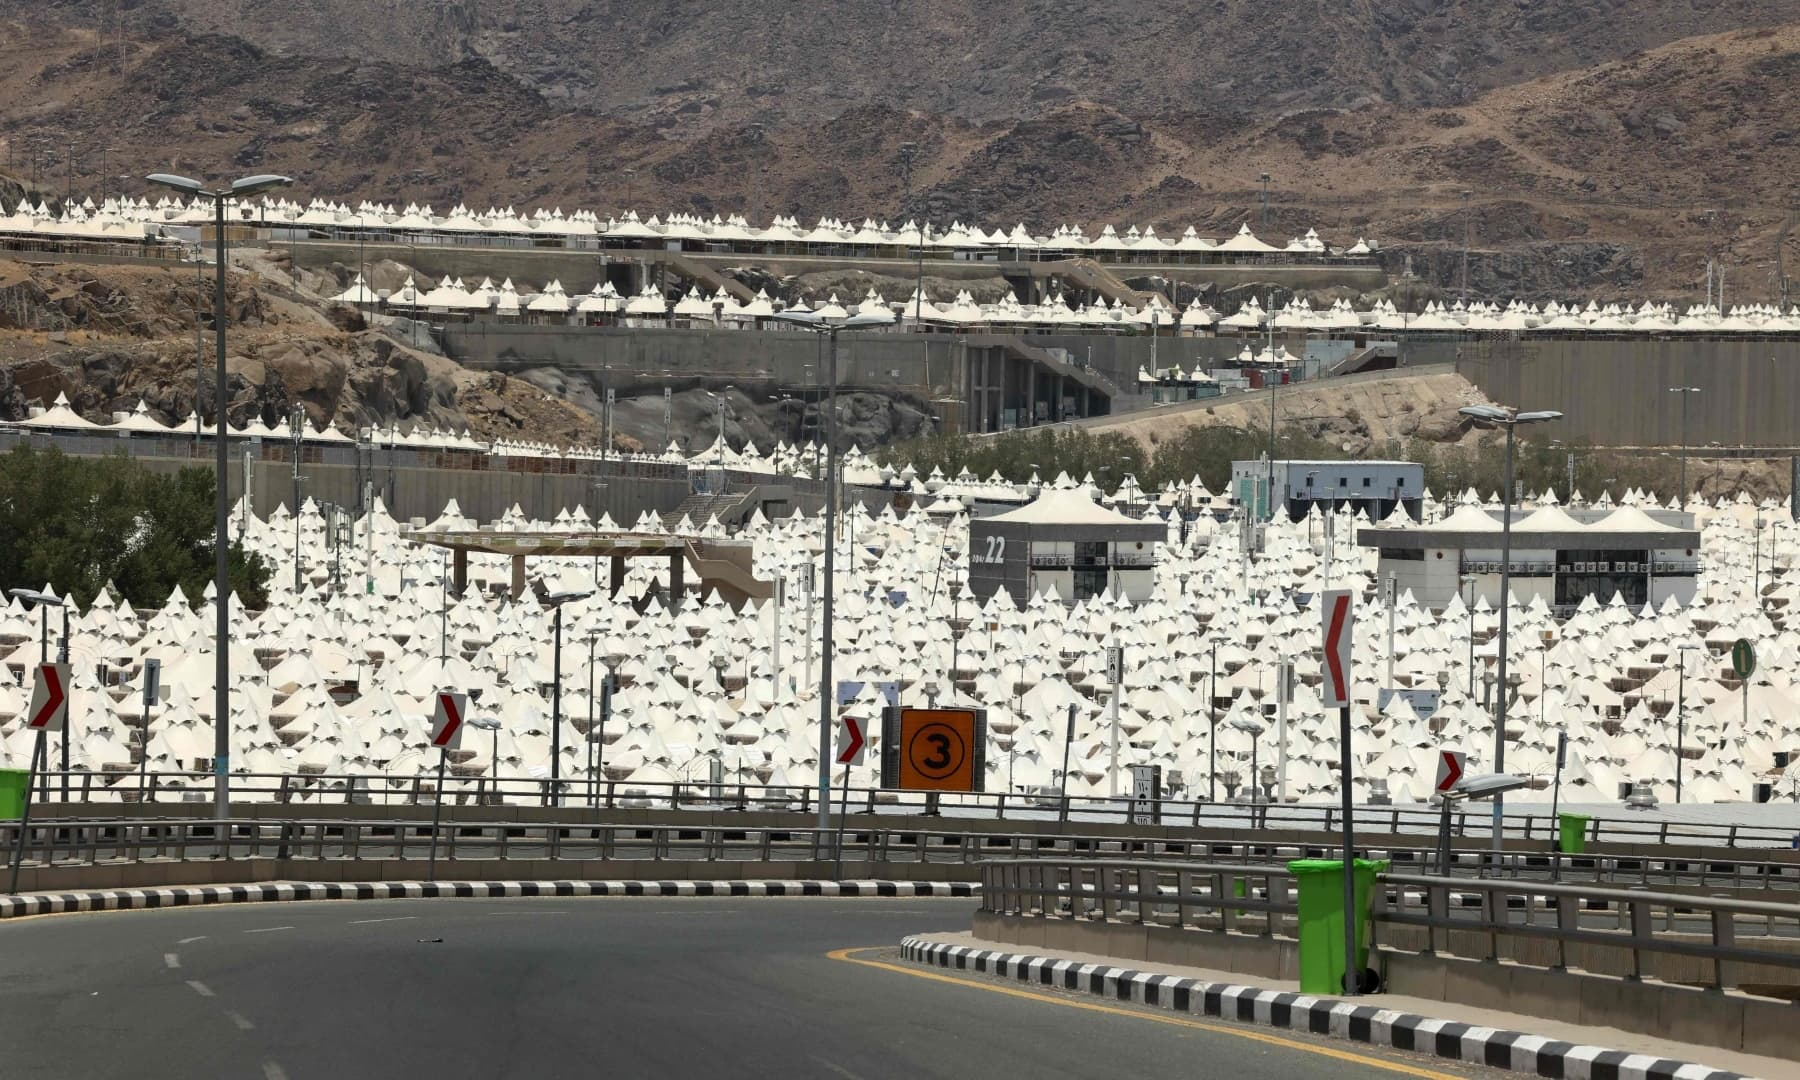 Tents are set up to host pilgrims in Mina, near the holy city of Makkah, Saudi Arabia, July 16, 2021. — AFP